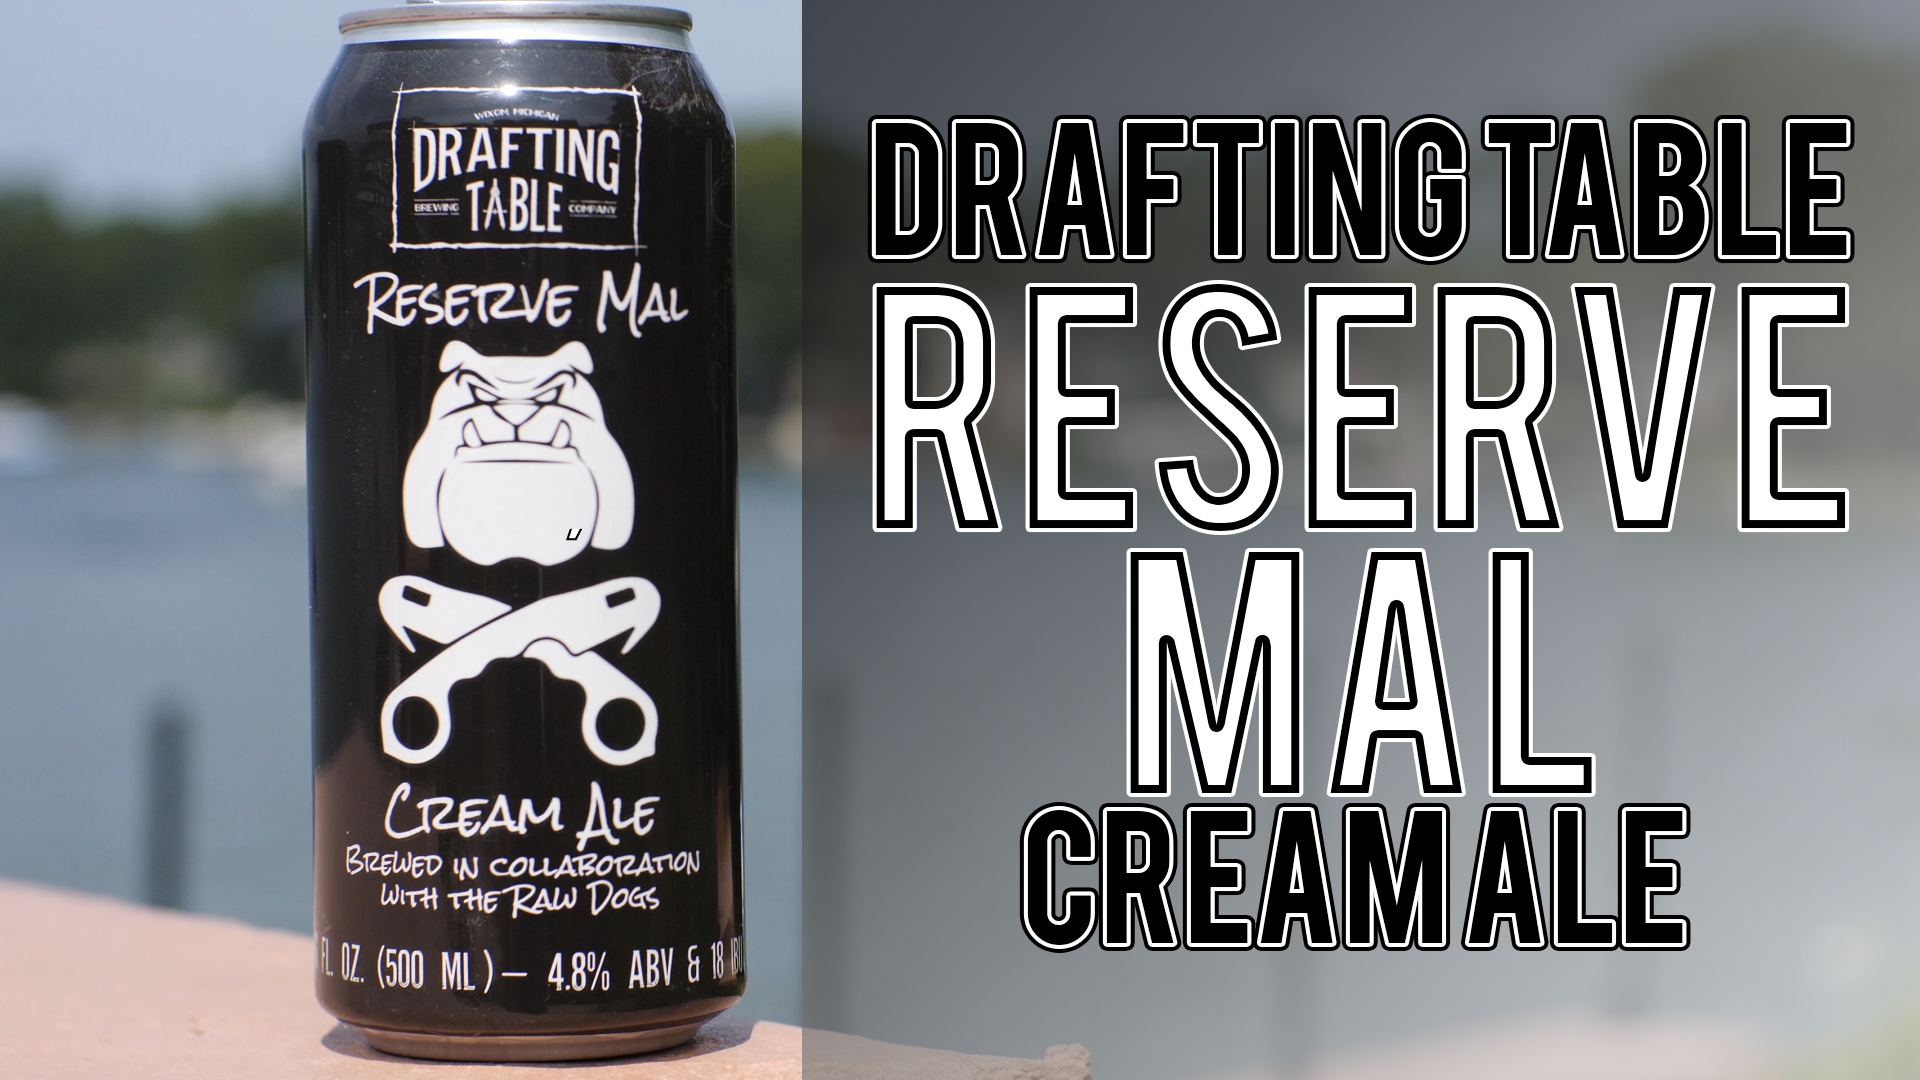 Drafting Table – Reserve Mal Cream Ale – Wixom, MI